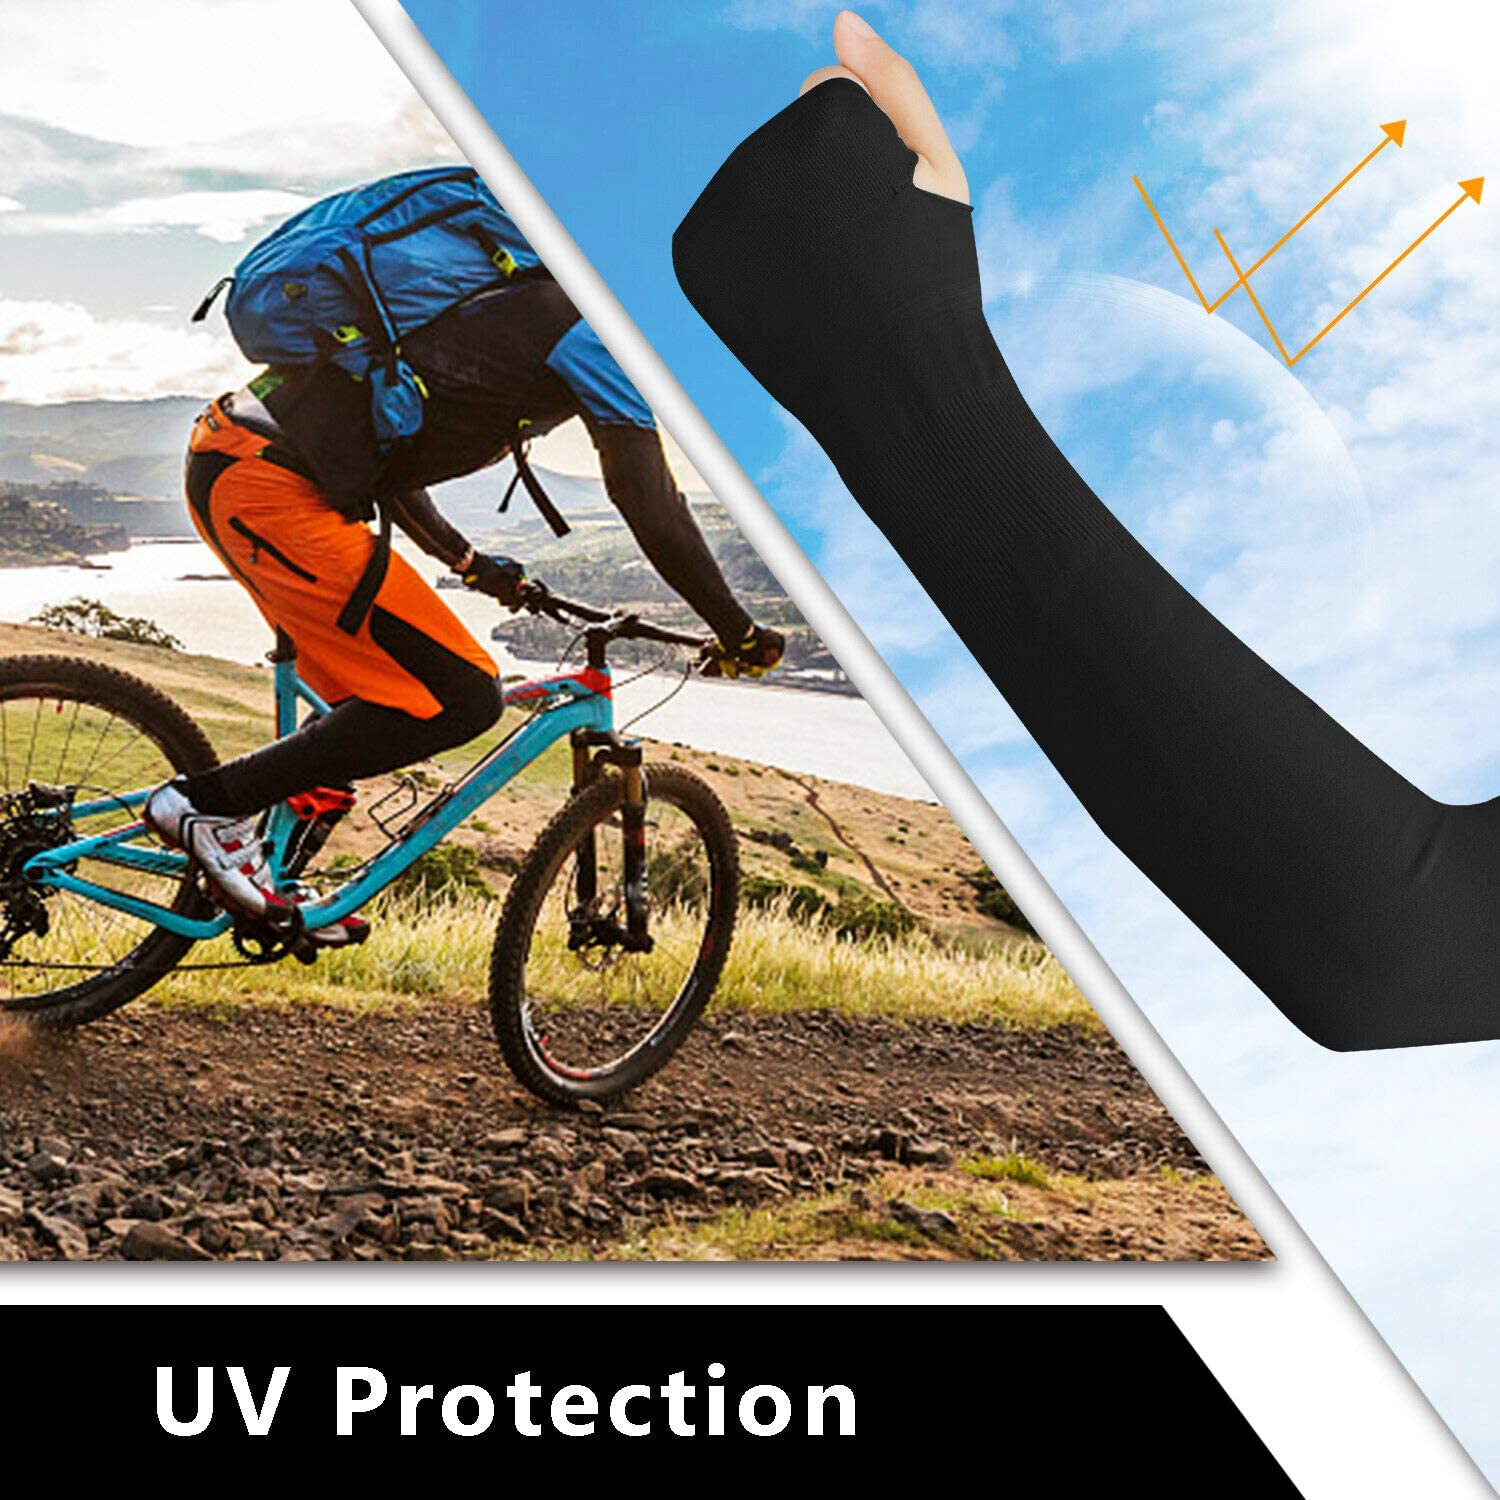 Mangas protectoras UV SPF 50 Sun Protection Arm Warmers for Men and Women for Running Baseball Golf Breathable AHUAINC Cycling Football and Other Outdoor Sports Volleyball